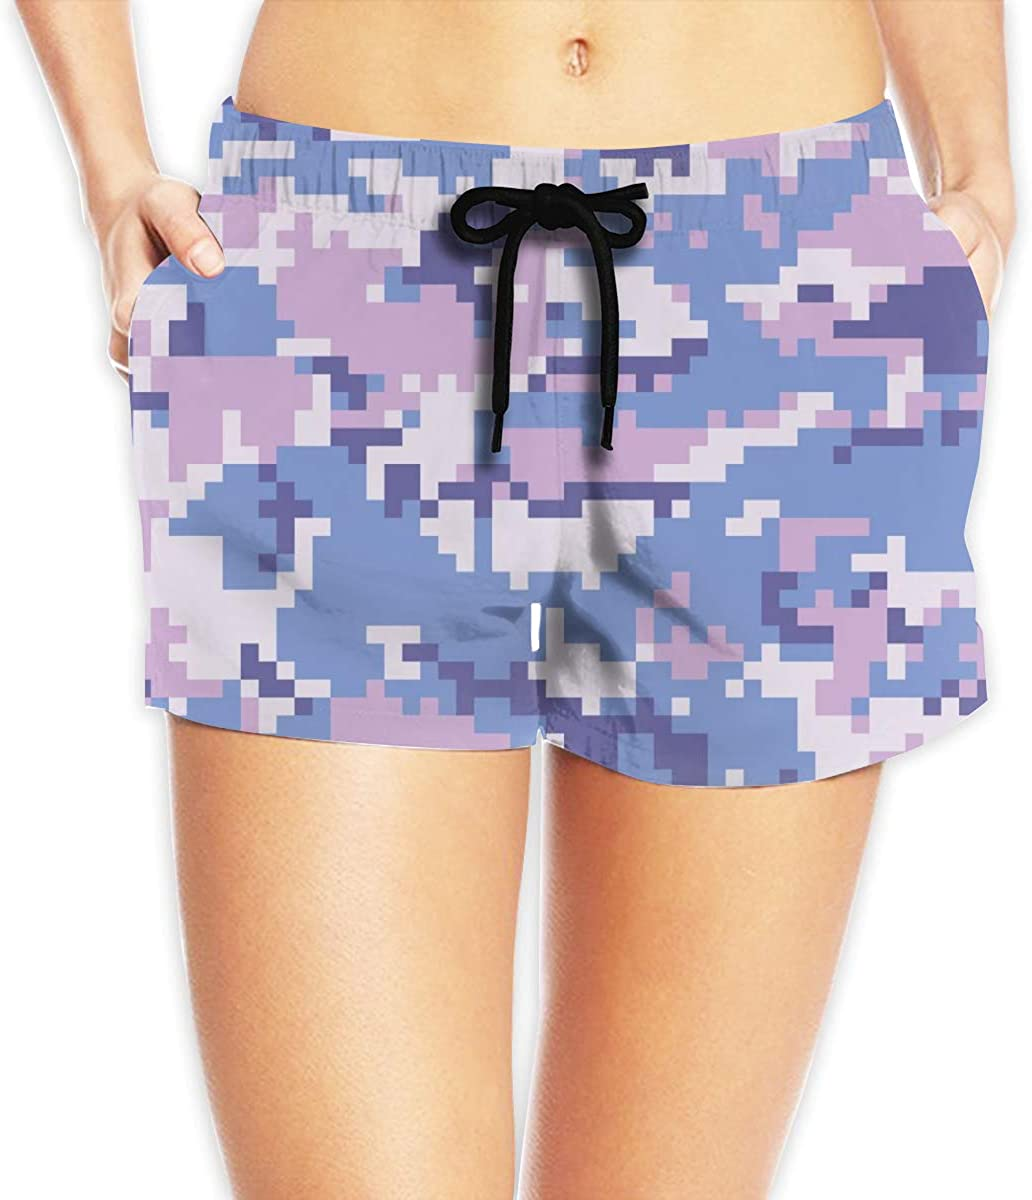 MOCSTONE Military Camouflage Women's Beach Shorts Board Shorts with Pocket Swimming Trunks